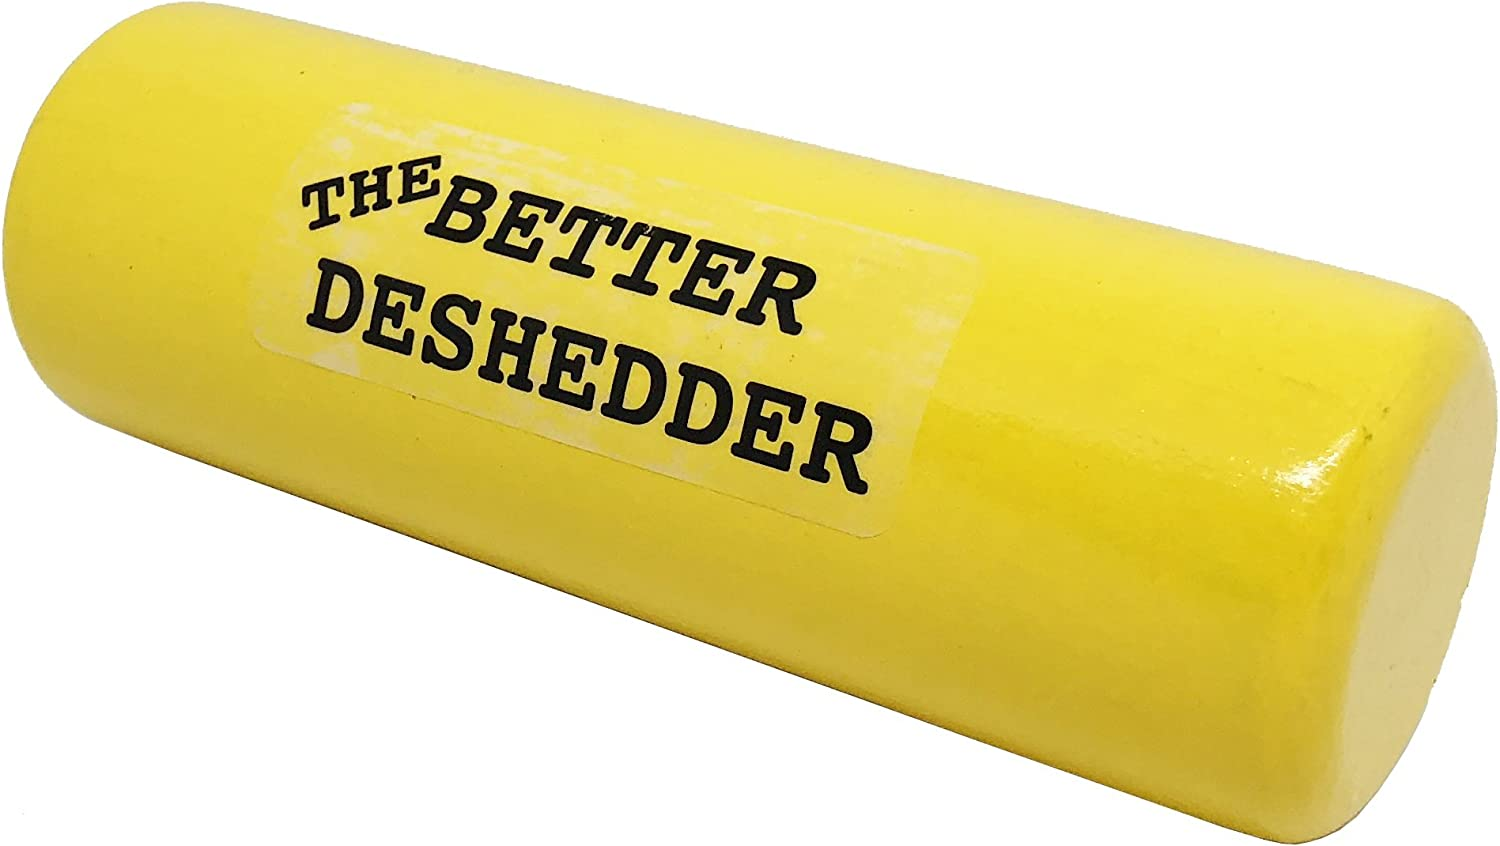 The Better Deshedder Twin Blade Dog Grooming Brush Reduces Shedding by 90/%!! Wood Grain